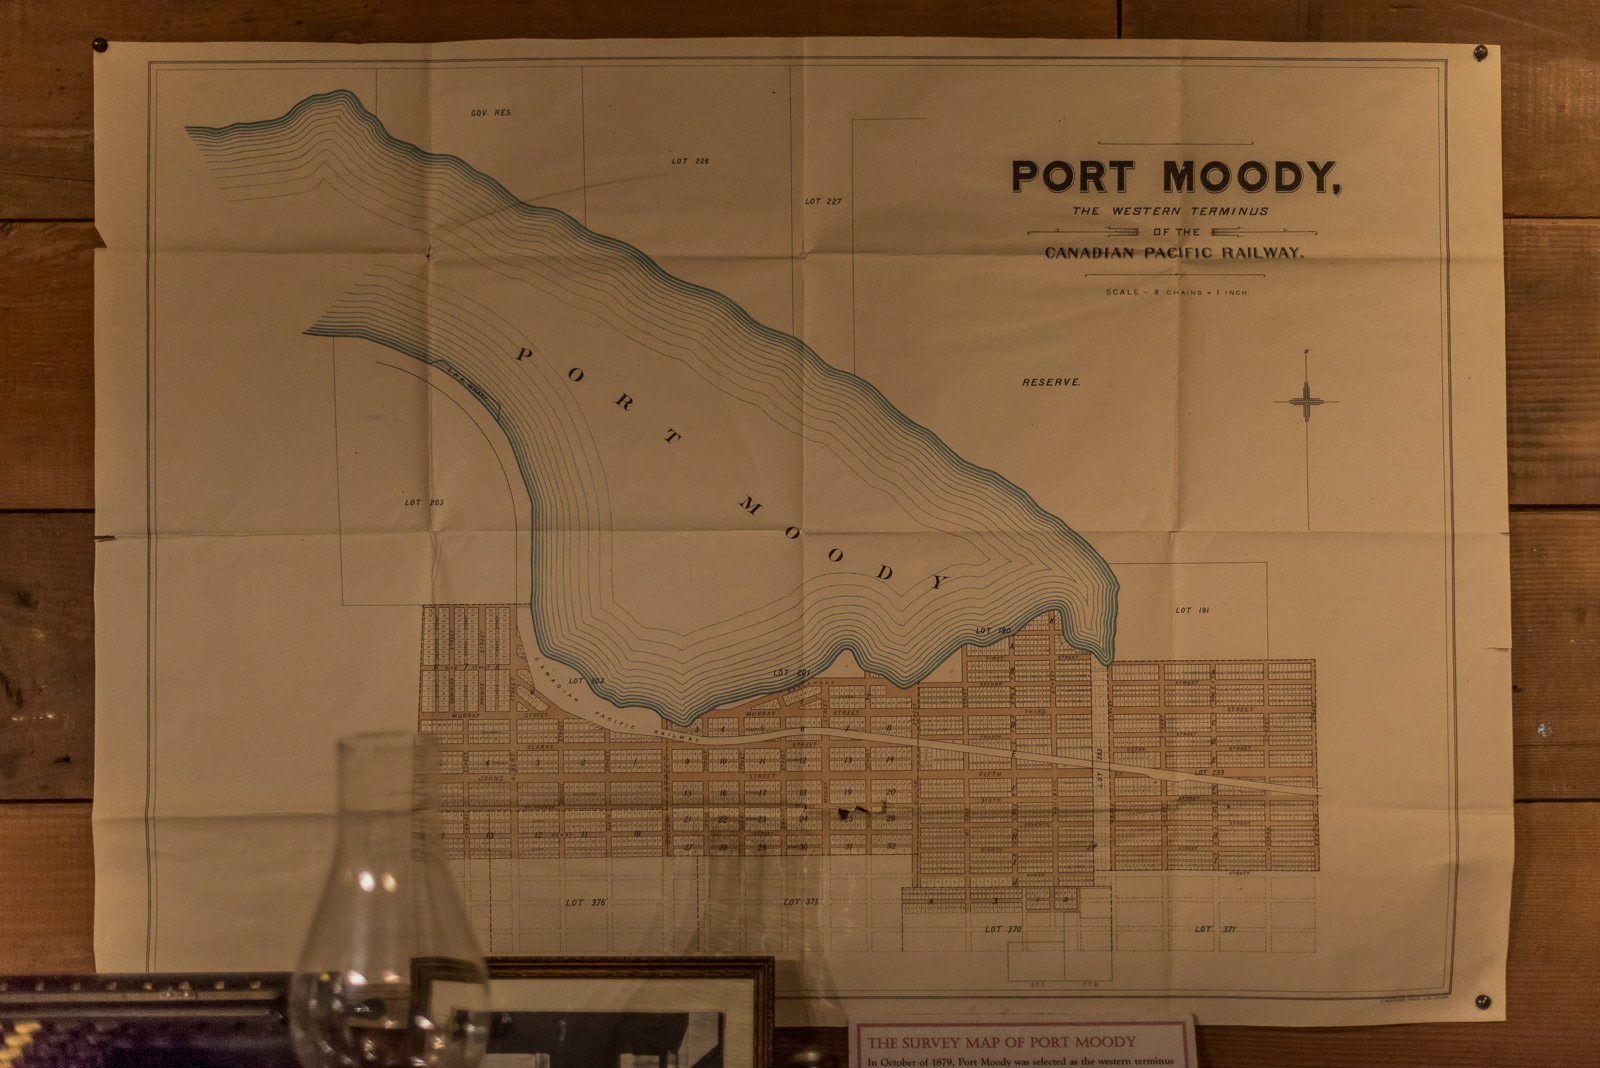 Street map of Port Moody